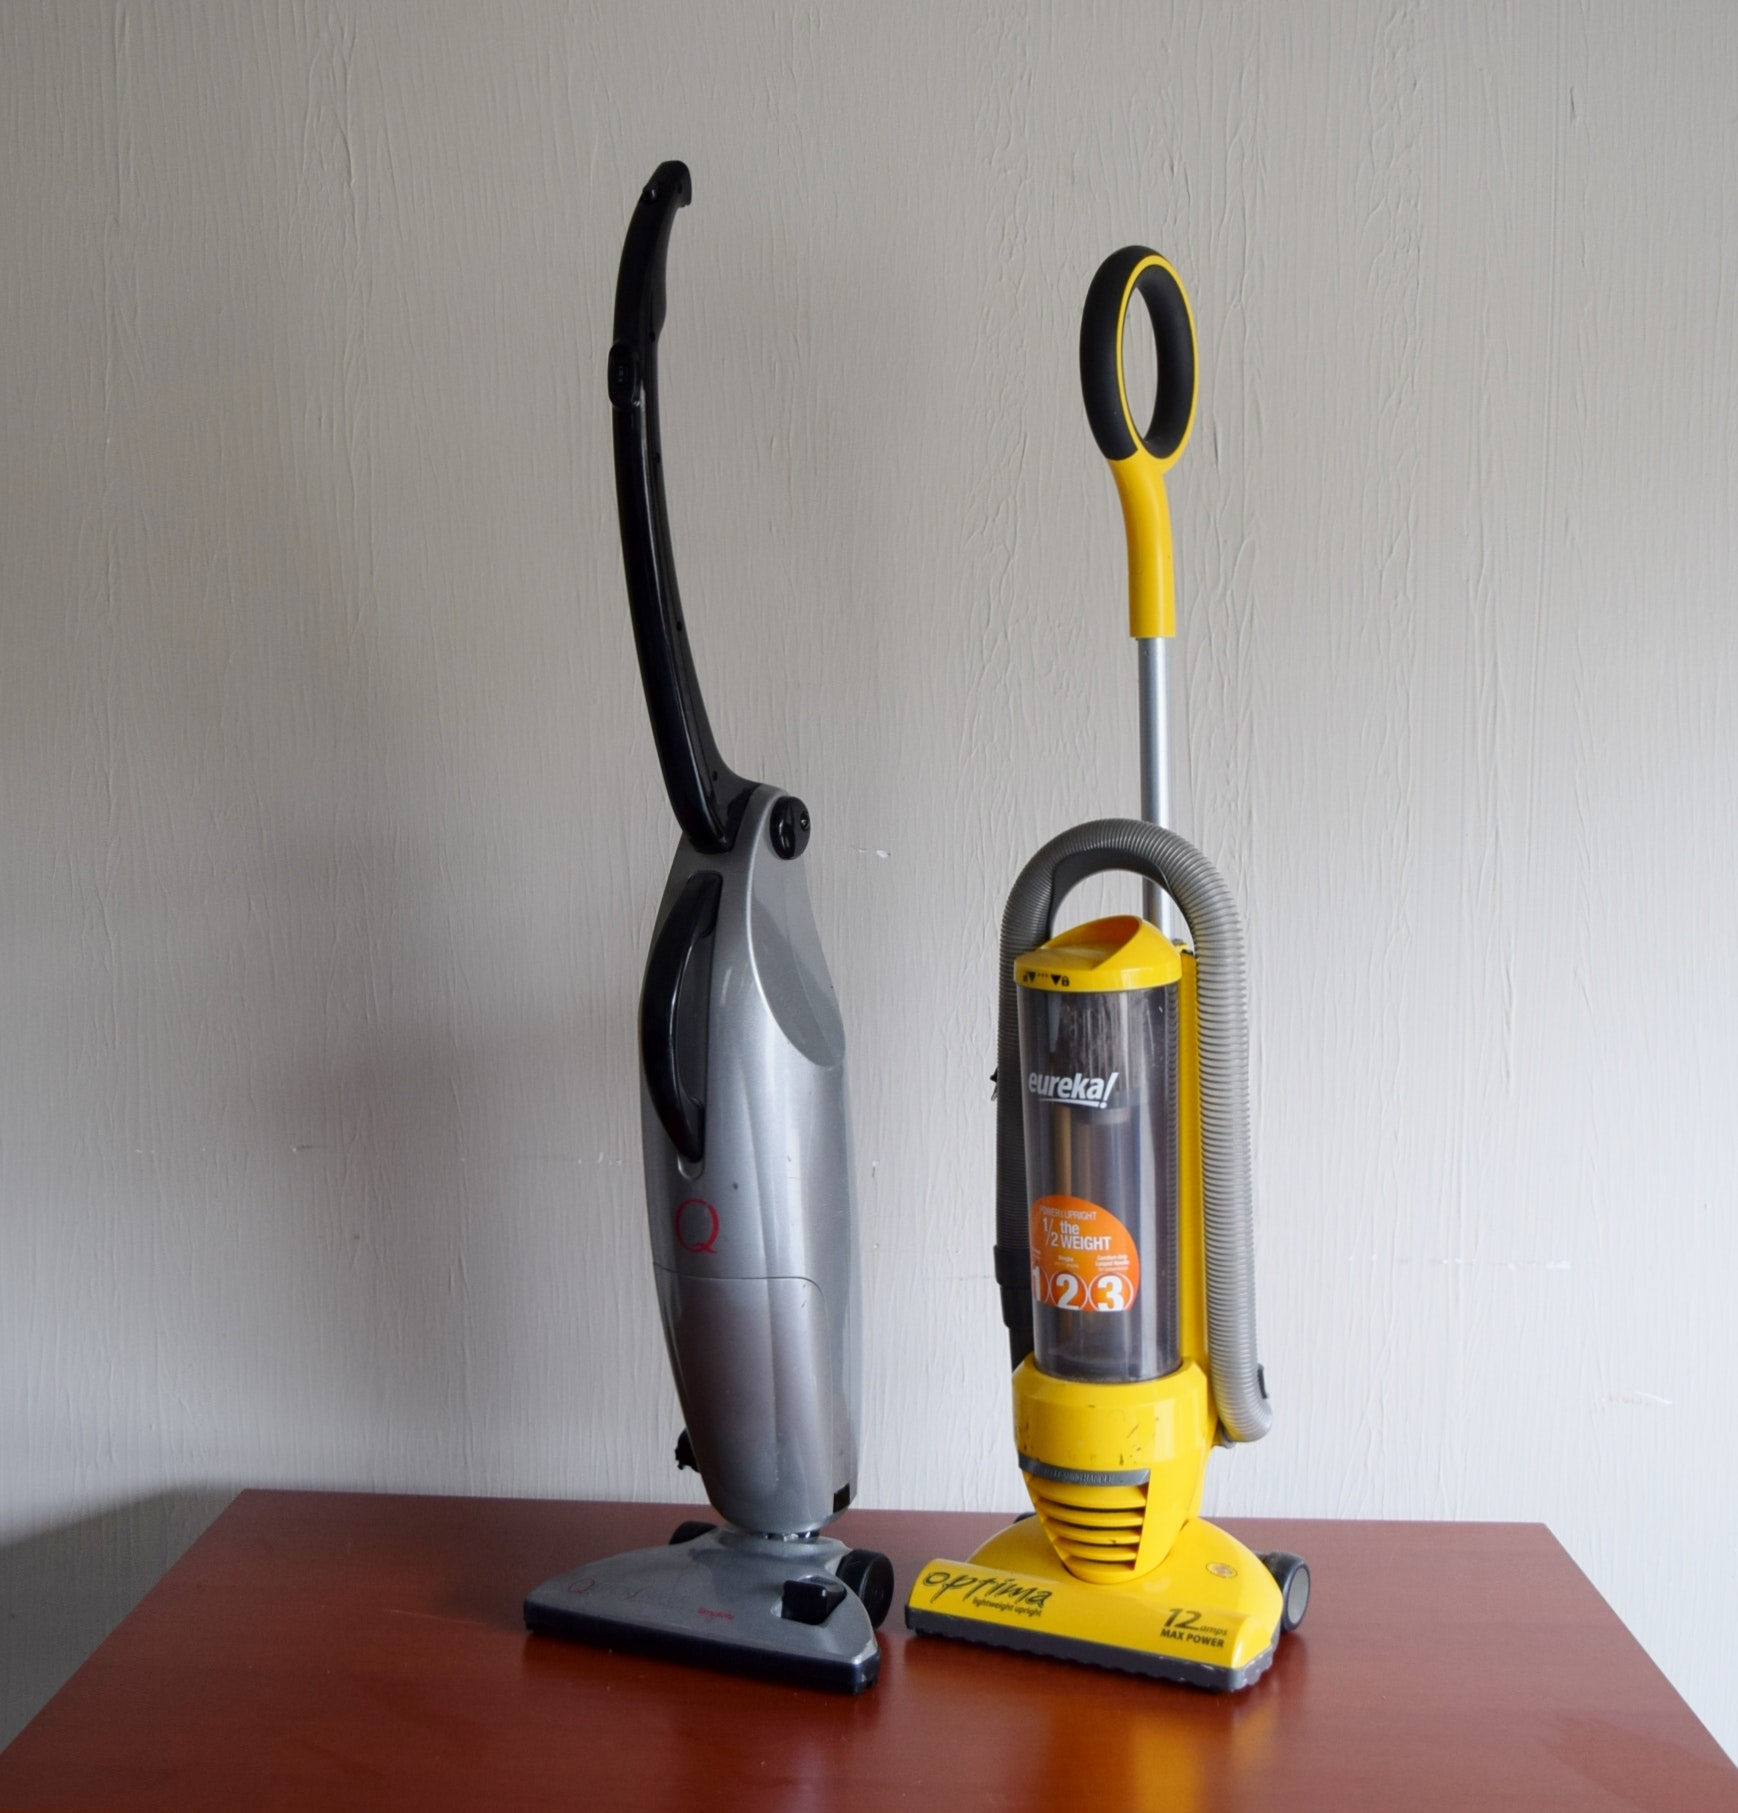 Pair of Lightweight Vacuum Cleaners